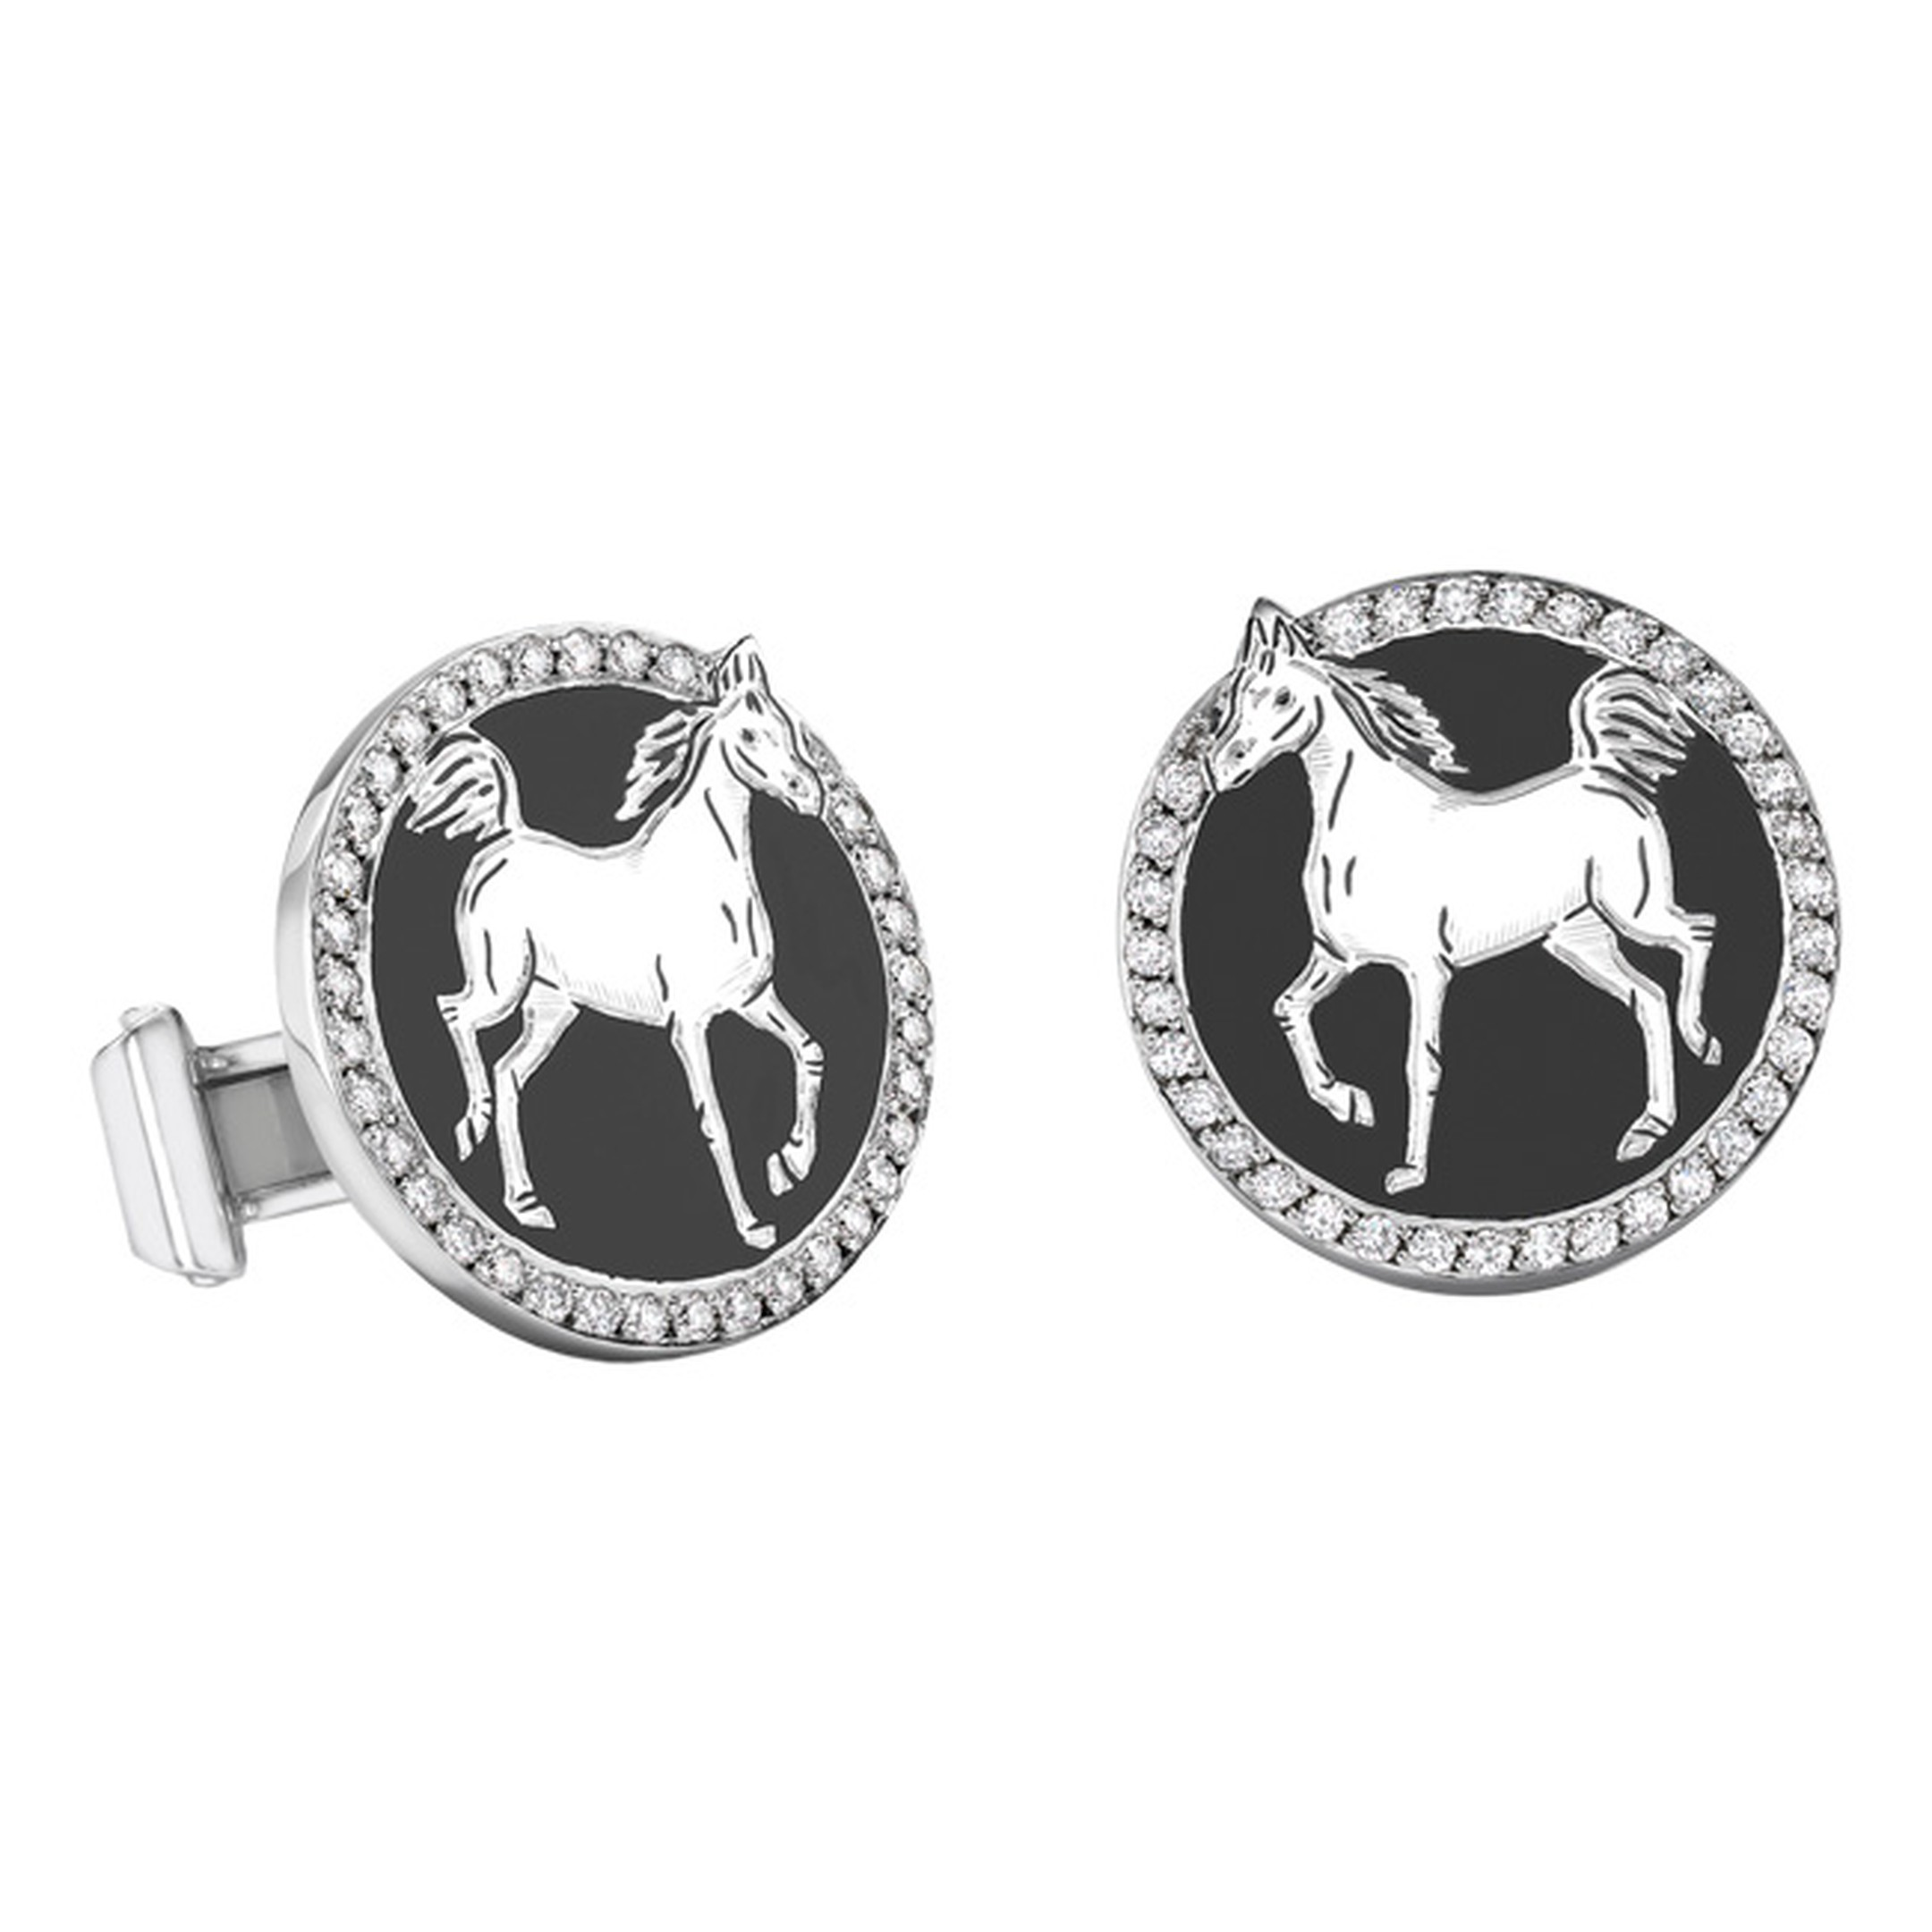 Theo_Fennell_Hand_Painted_Enamel_and_Diamond-_Horse_Cufflinks_20140123_Main